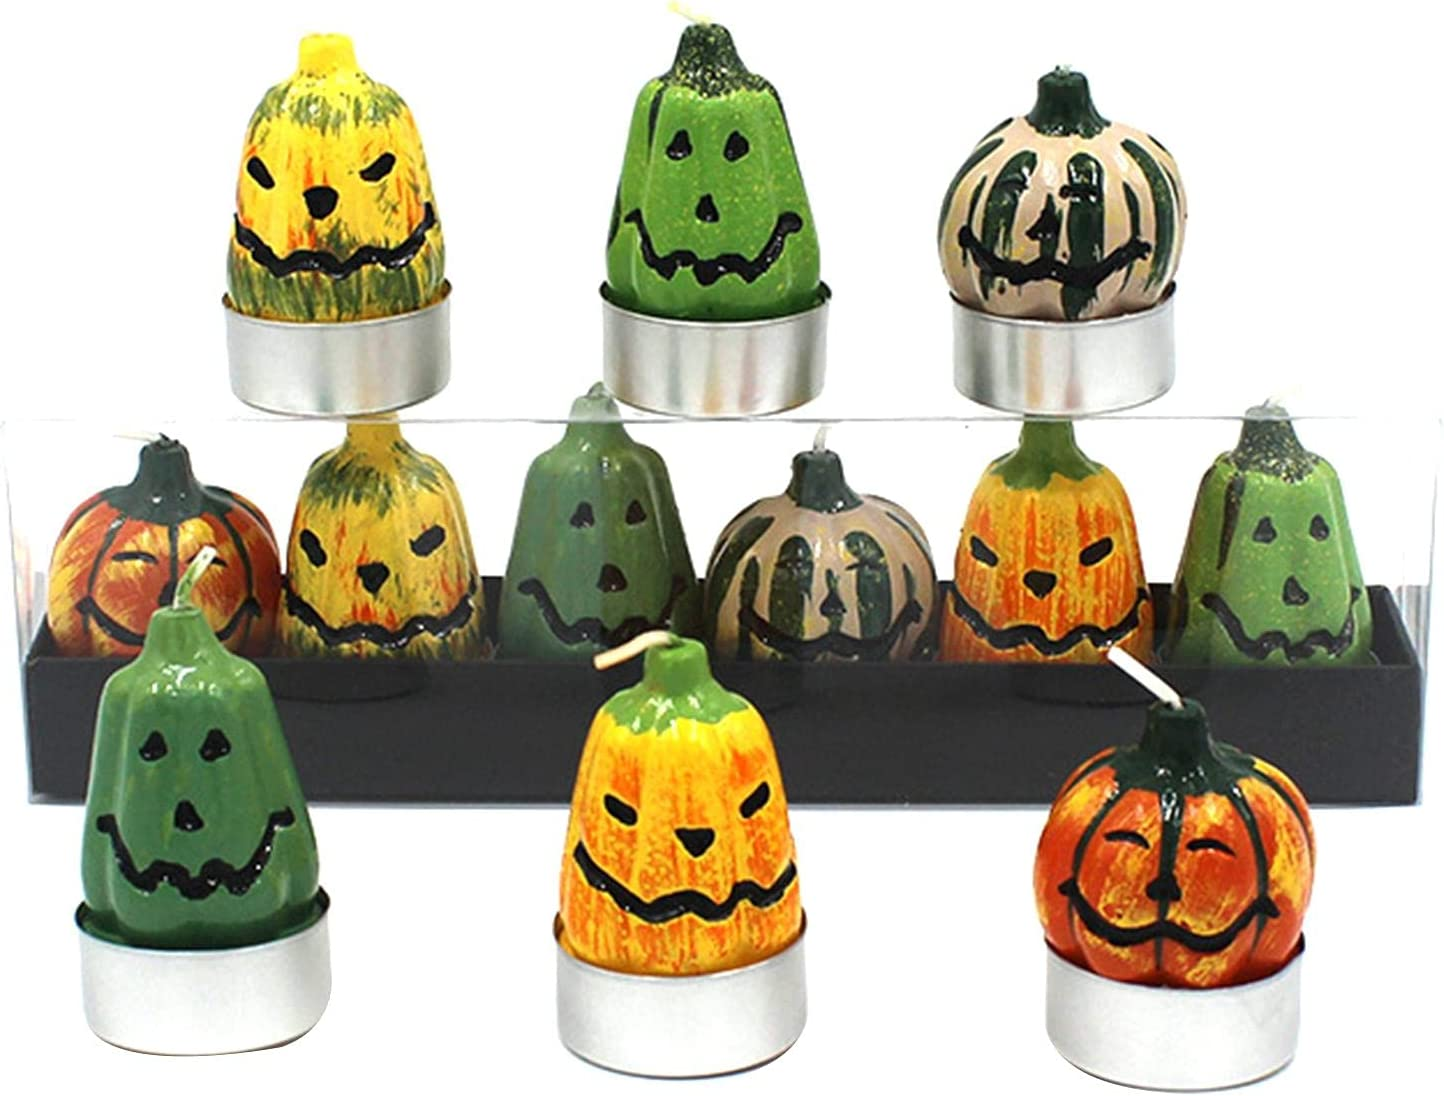 A R Halloween Tealight Candles Manufacturer direct delivery 6 Cute Tealigh Pieces Lights Superior Tea